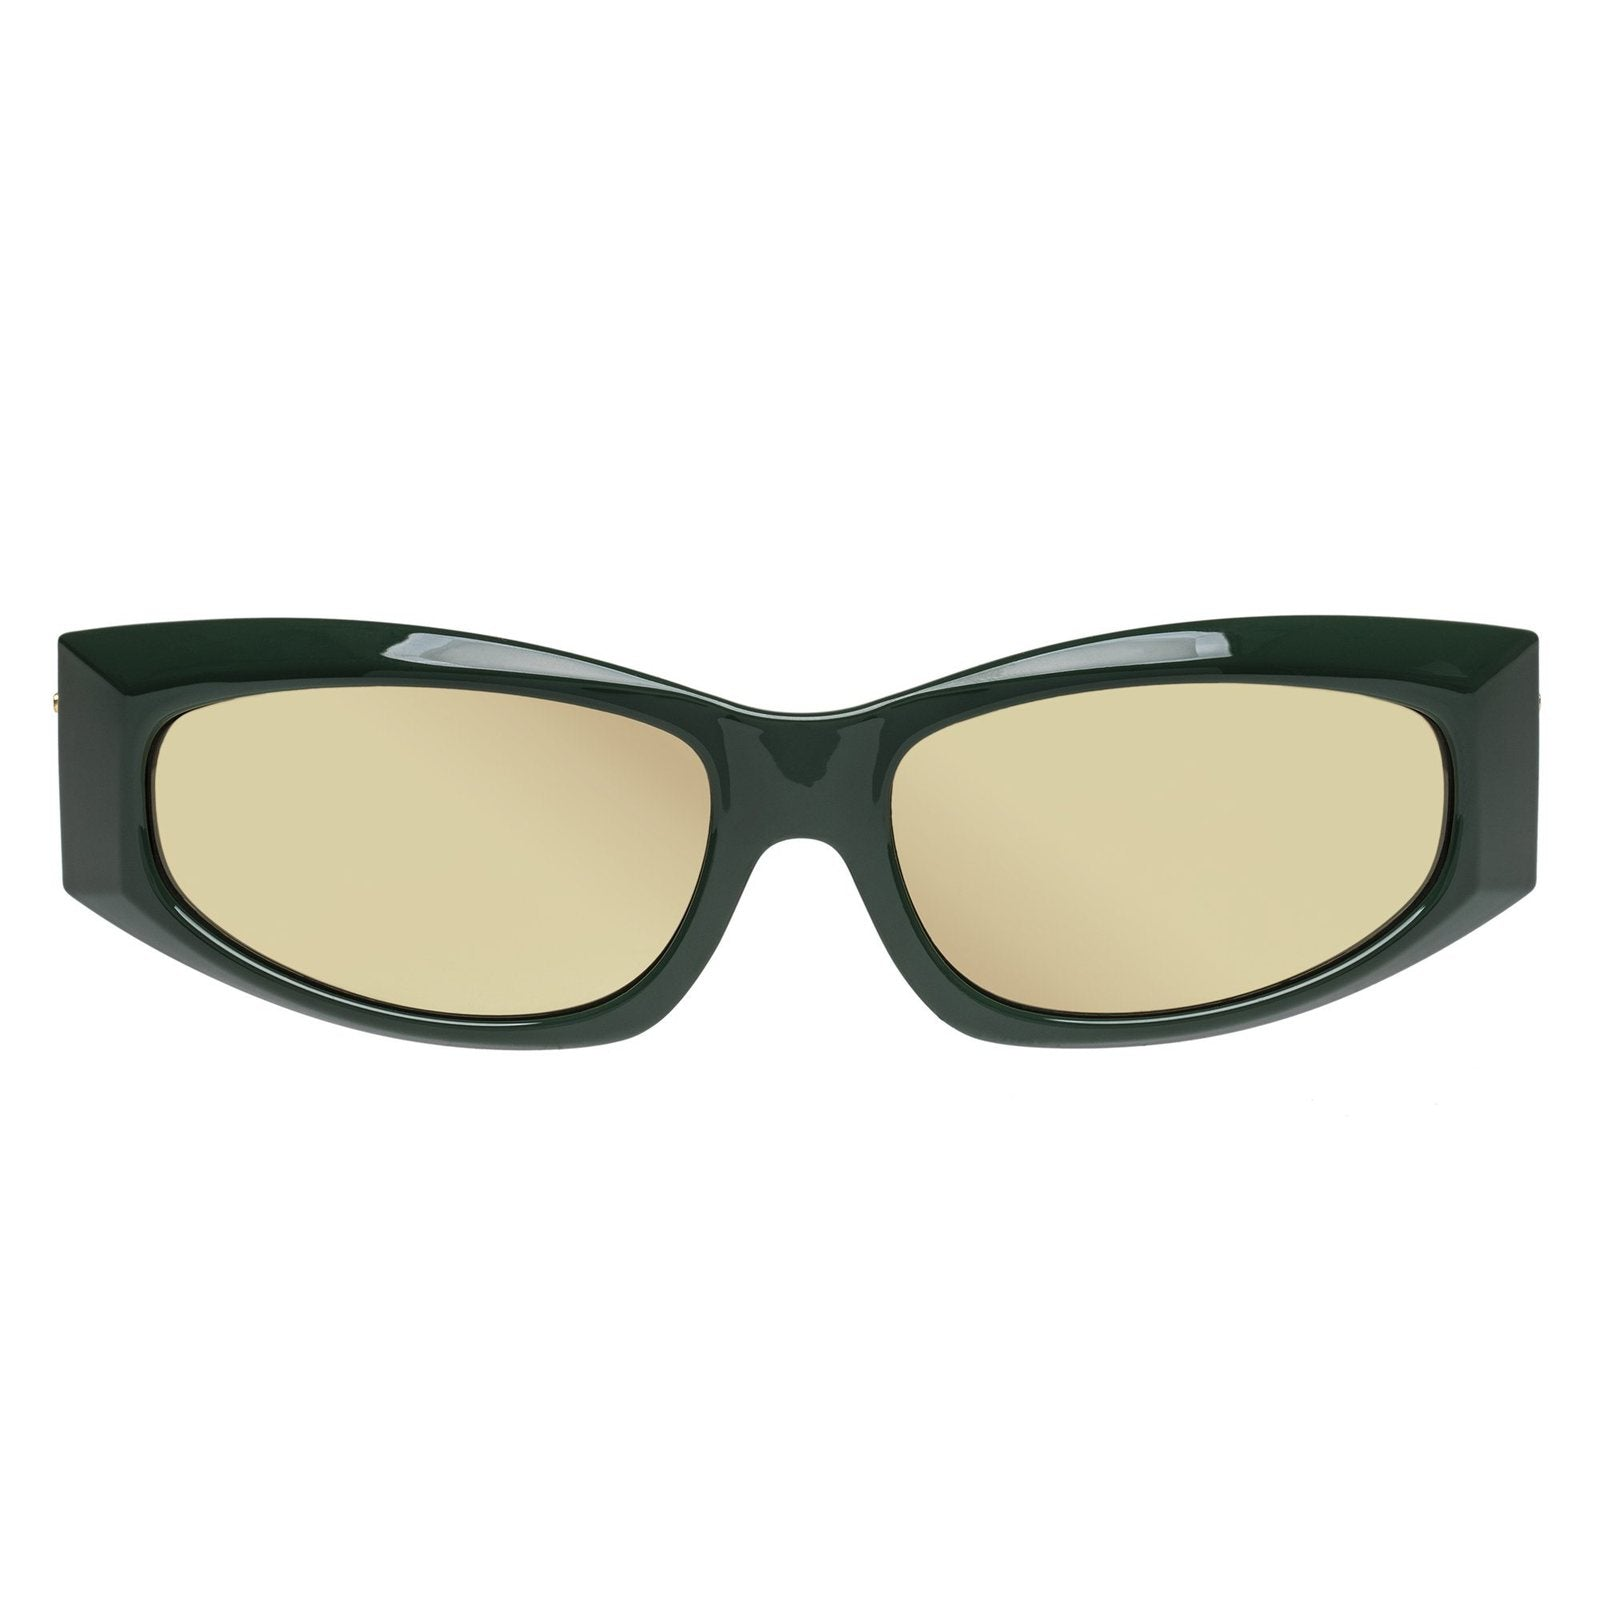 ADAM SELMAN X LE SPECS / THE EDGE / ARMY GREEN GOLD